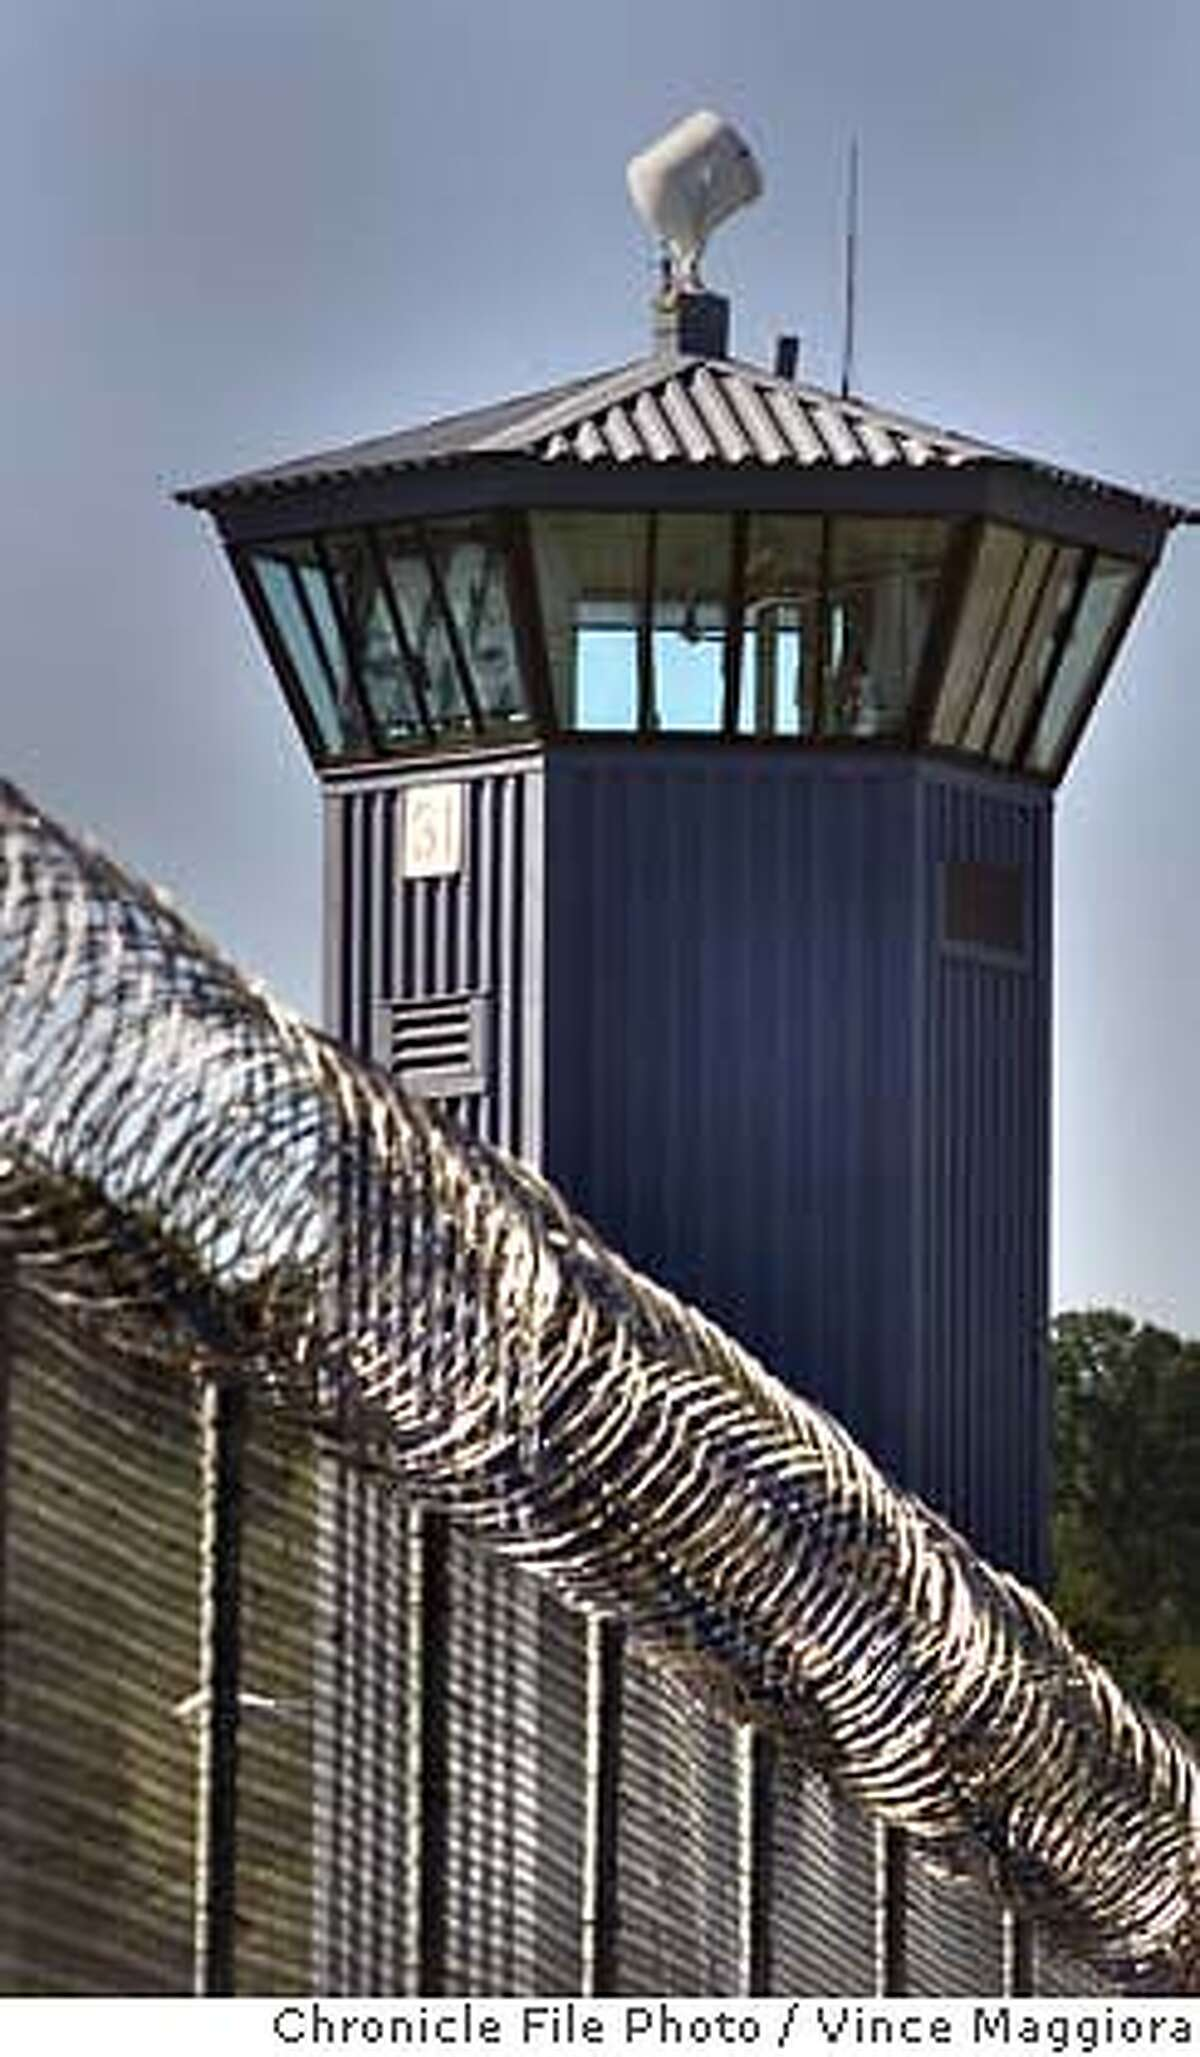 PRISON 4-C-19OCT00-NB-VM One of the guard towers and double fence at the Folsom Prison by Vince Maggiora